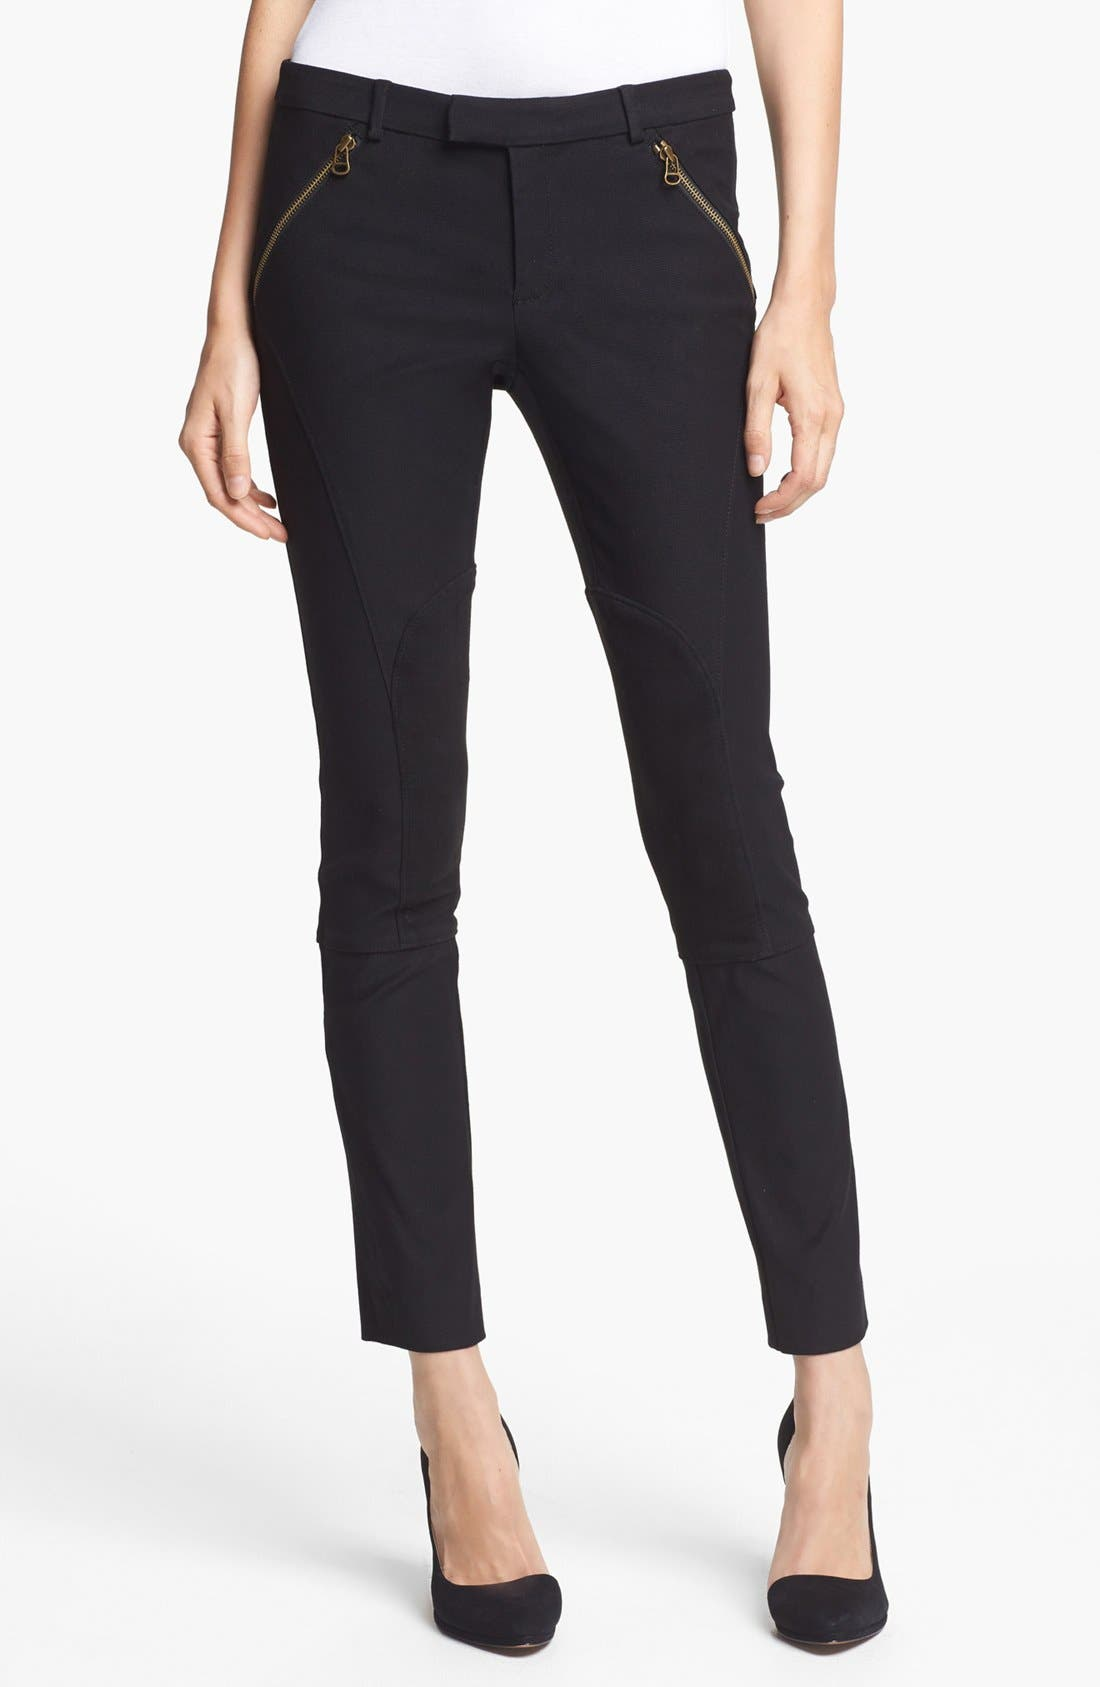 Main Image - Rachel Zoe 'Julietta' Crop Riding Pants